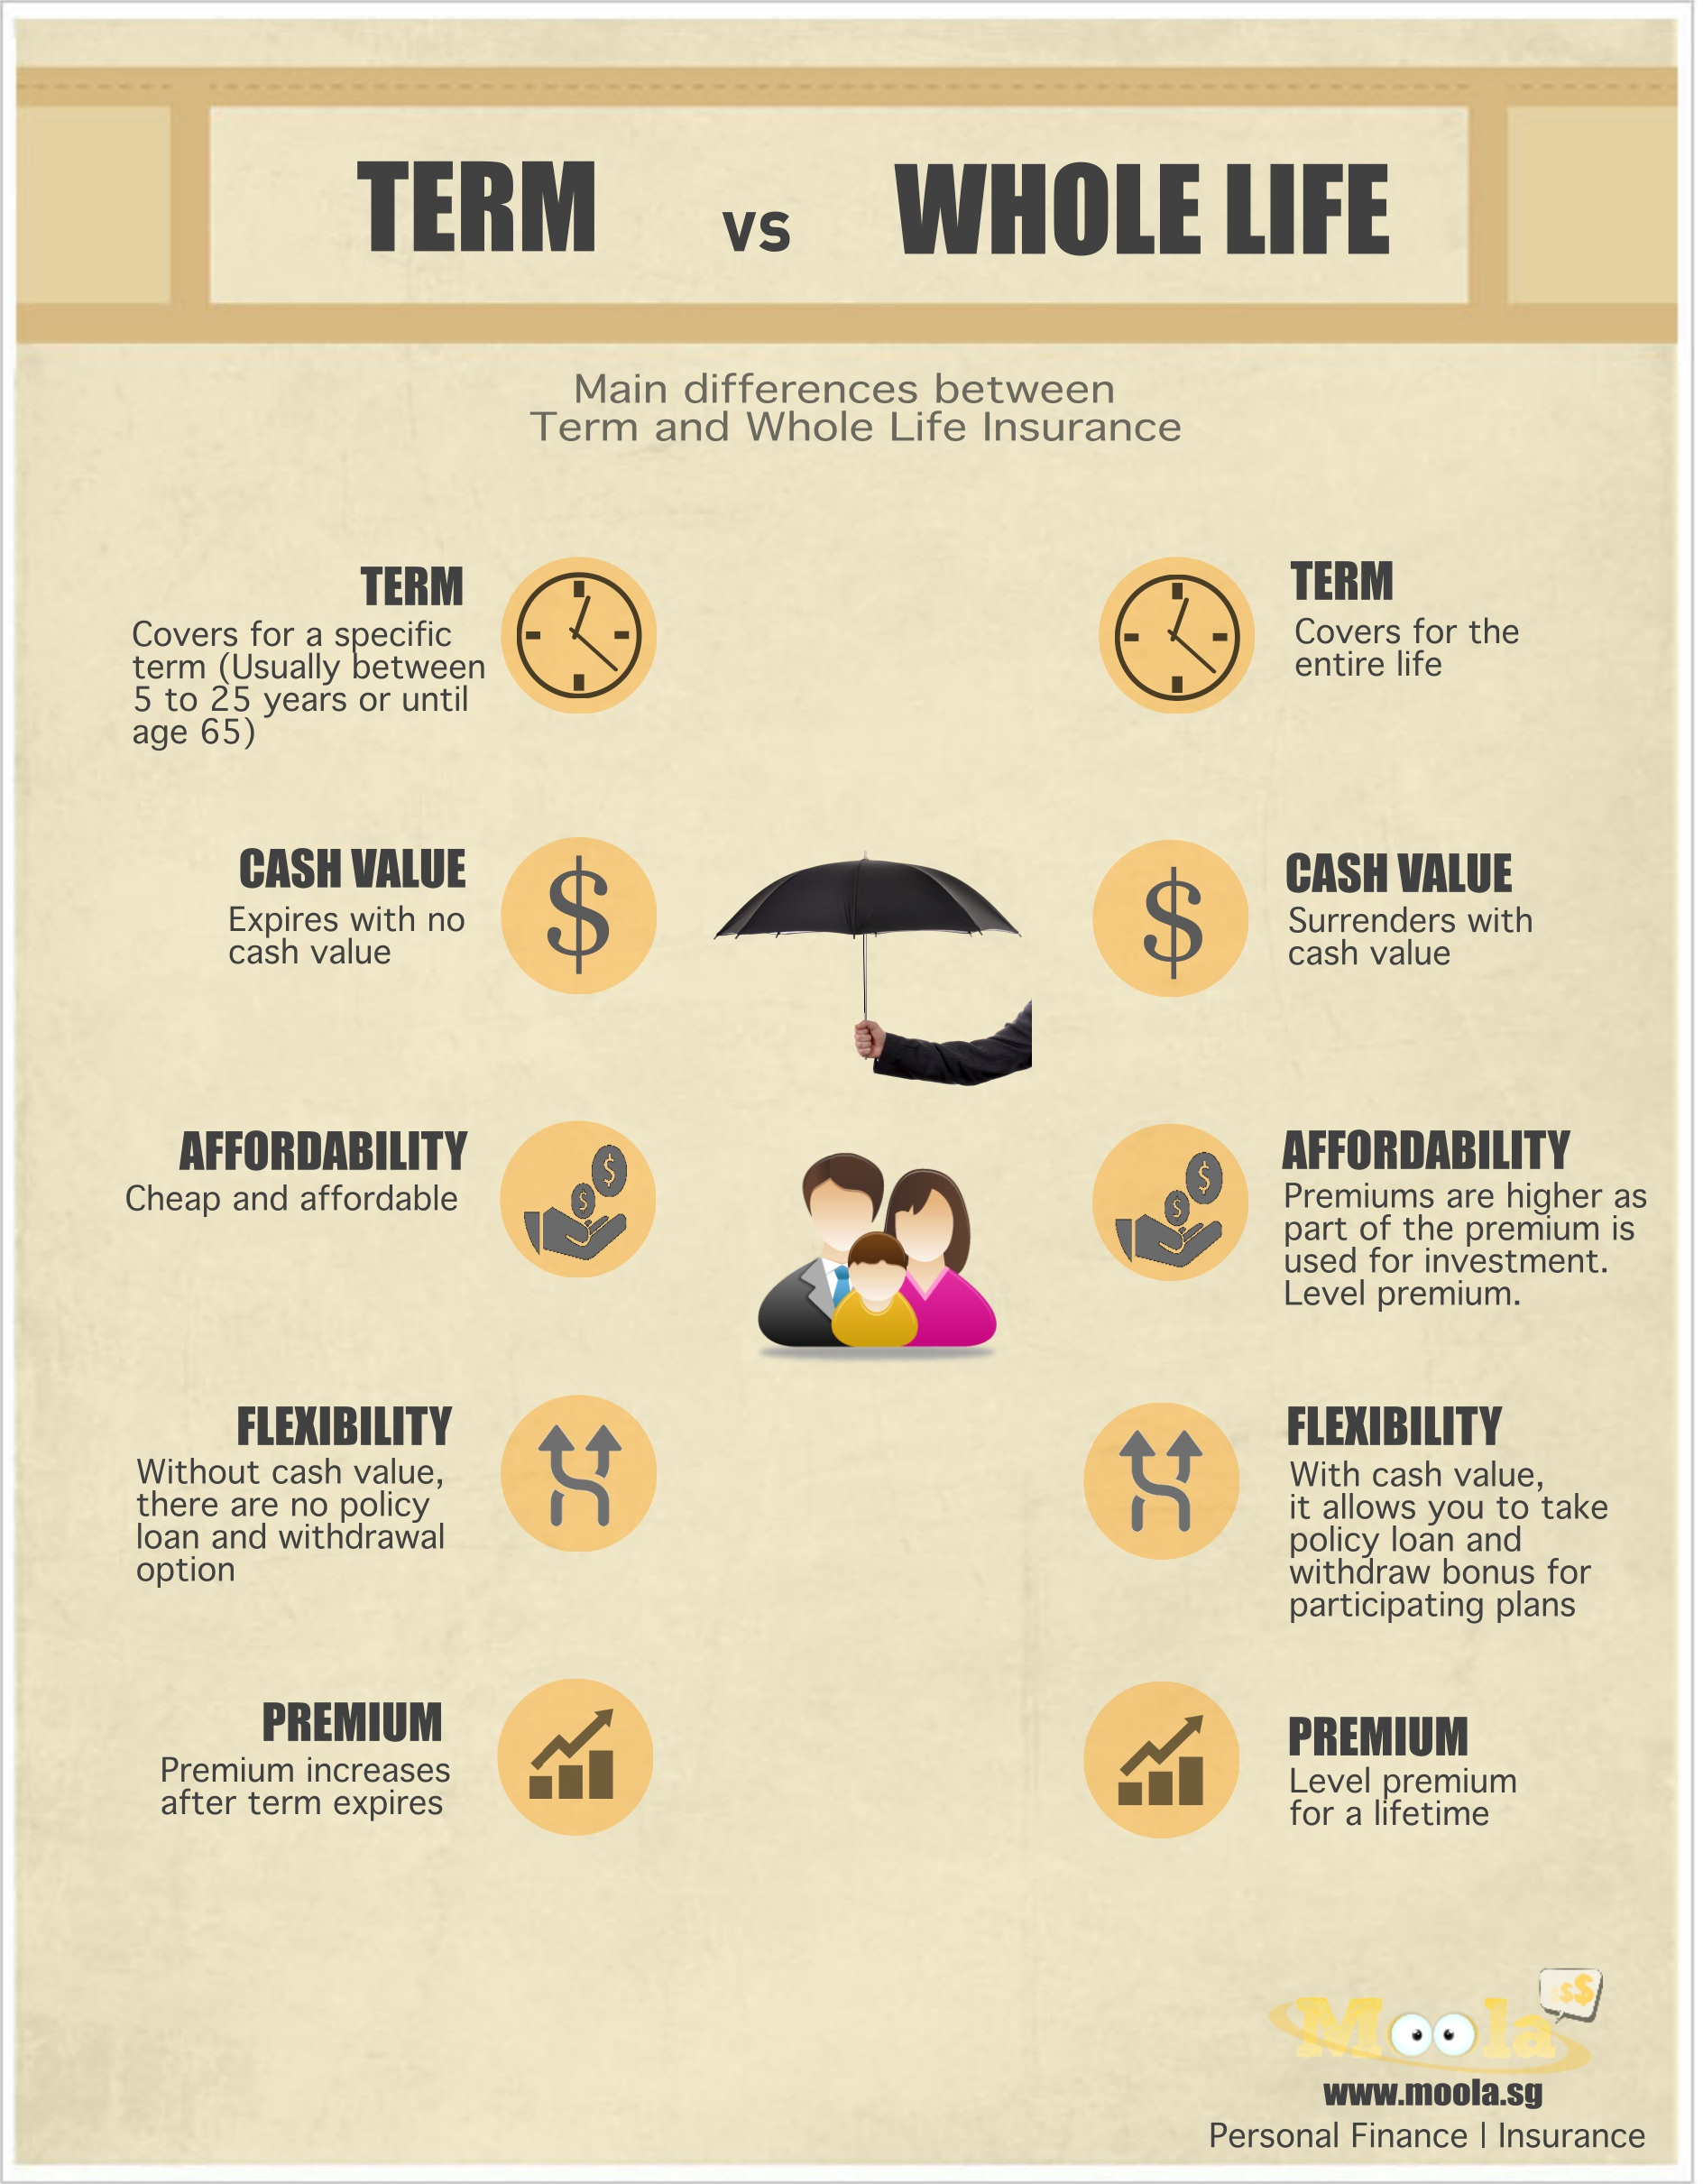 Should i buy term or life insurance?